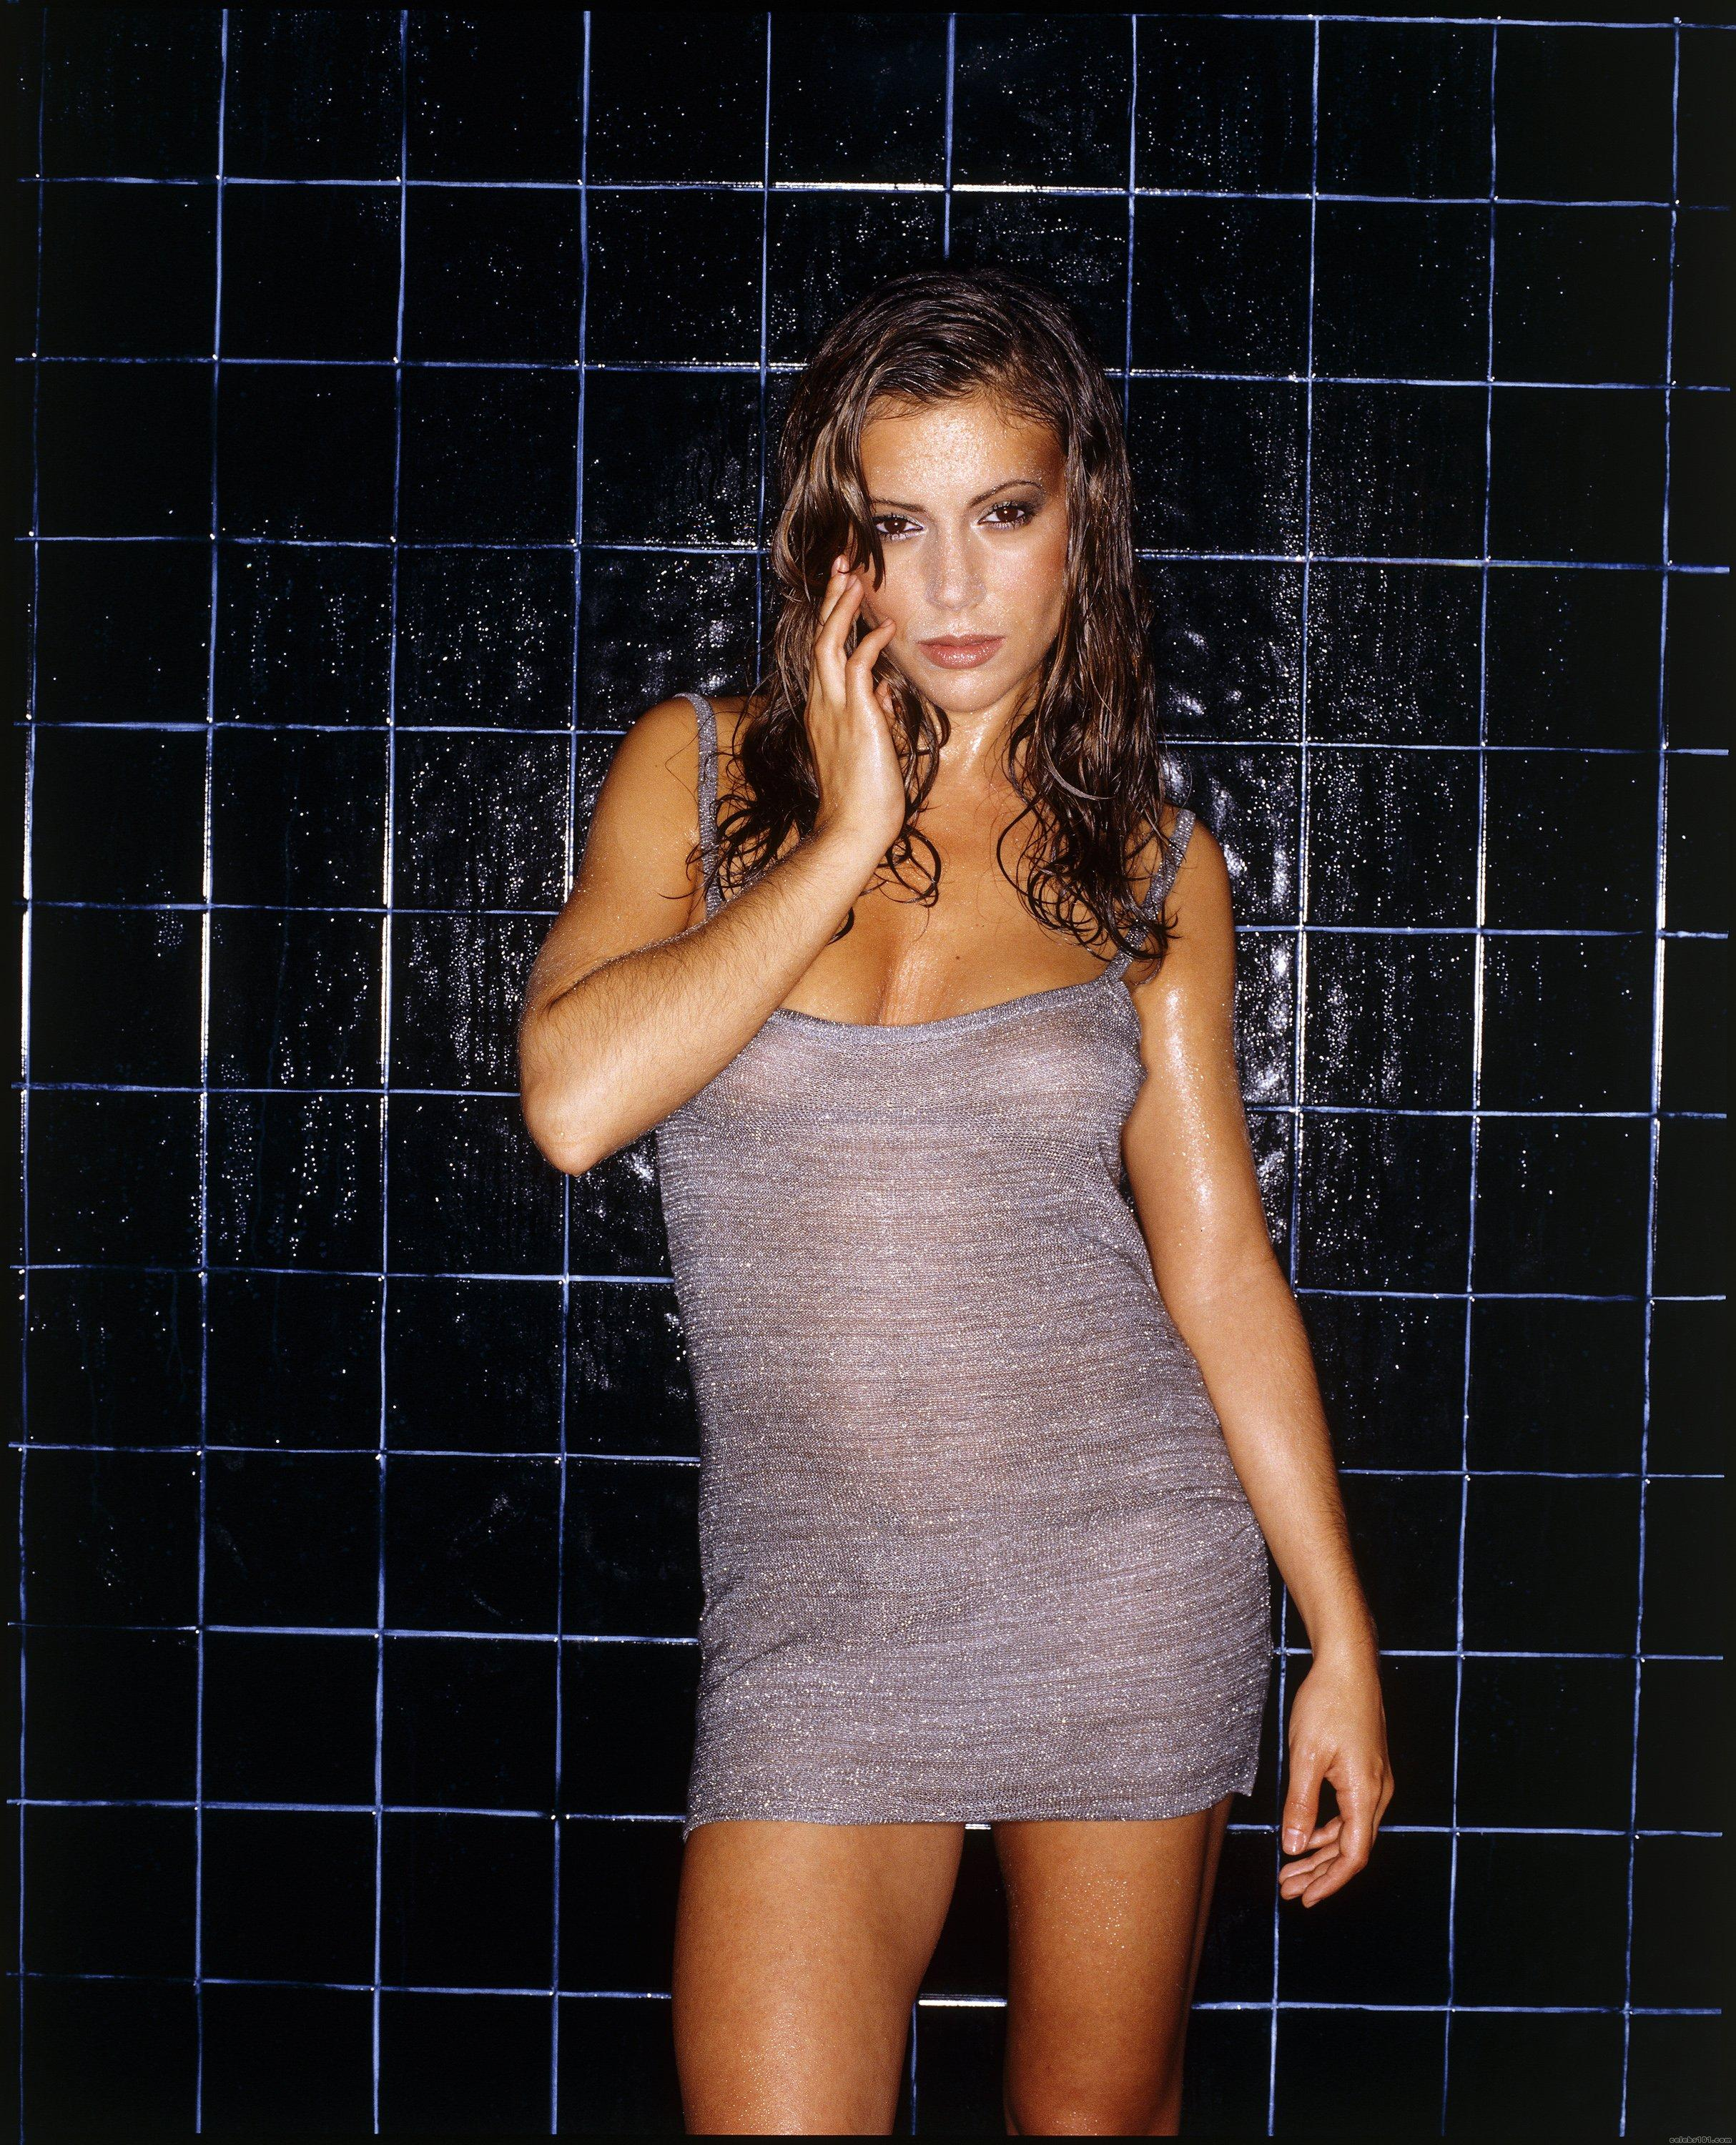 Alyssa Milano - High quality image size 2428x3000 of Alyssa Milano (